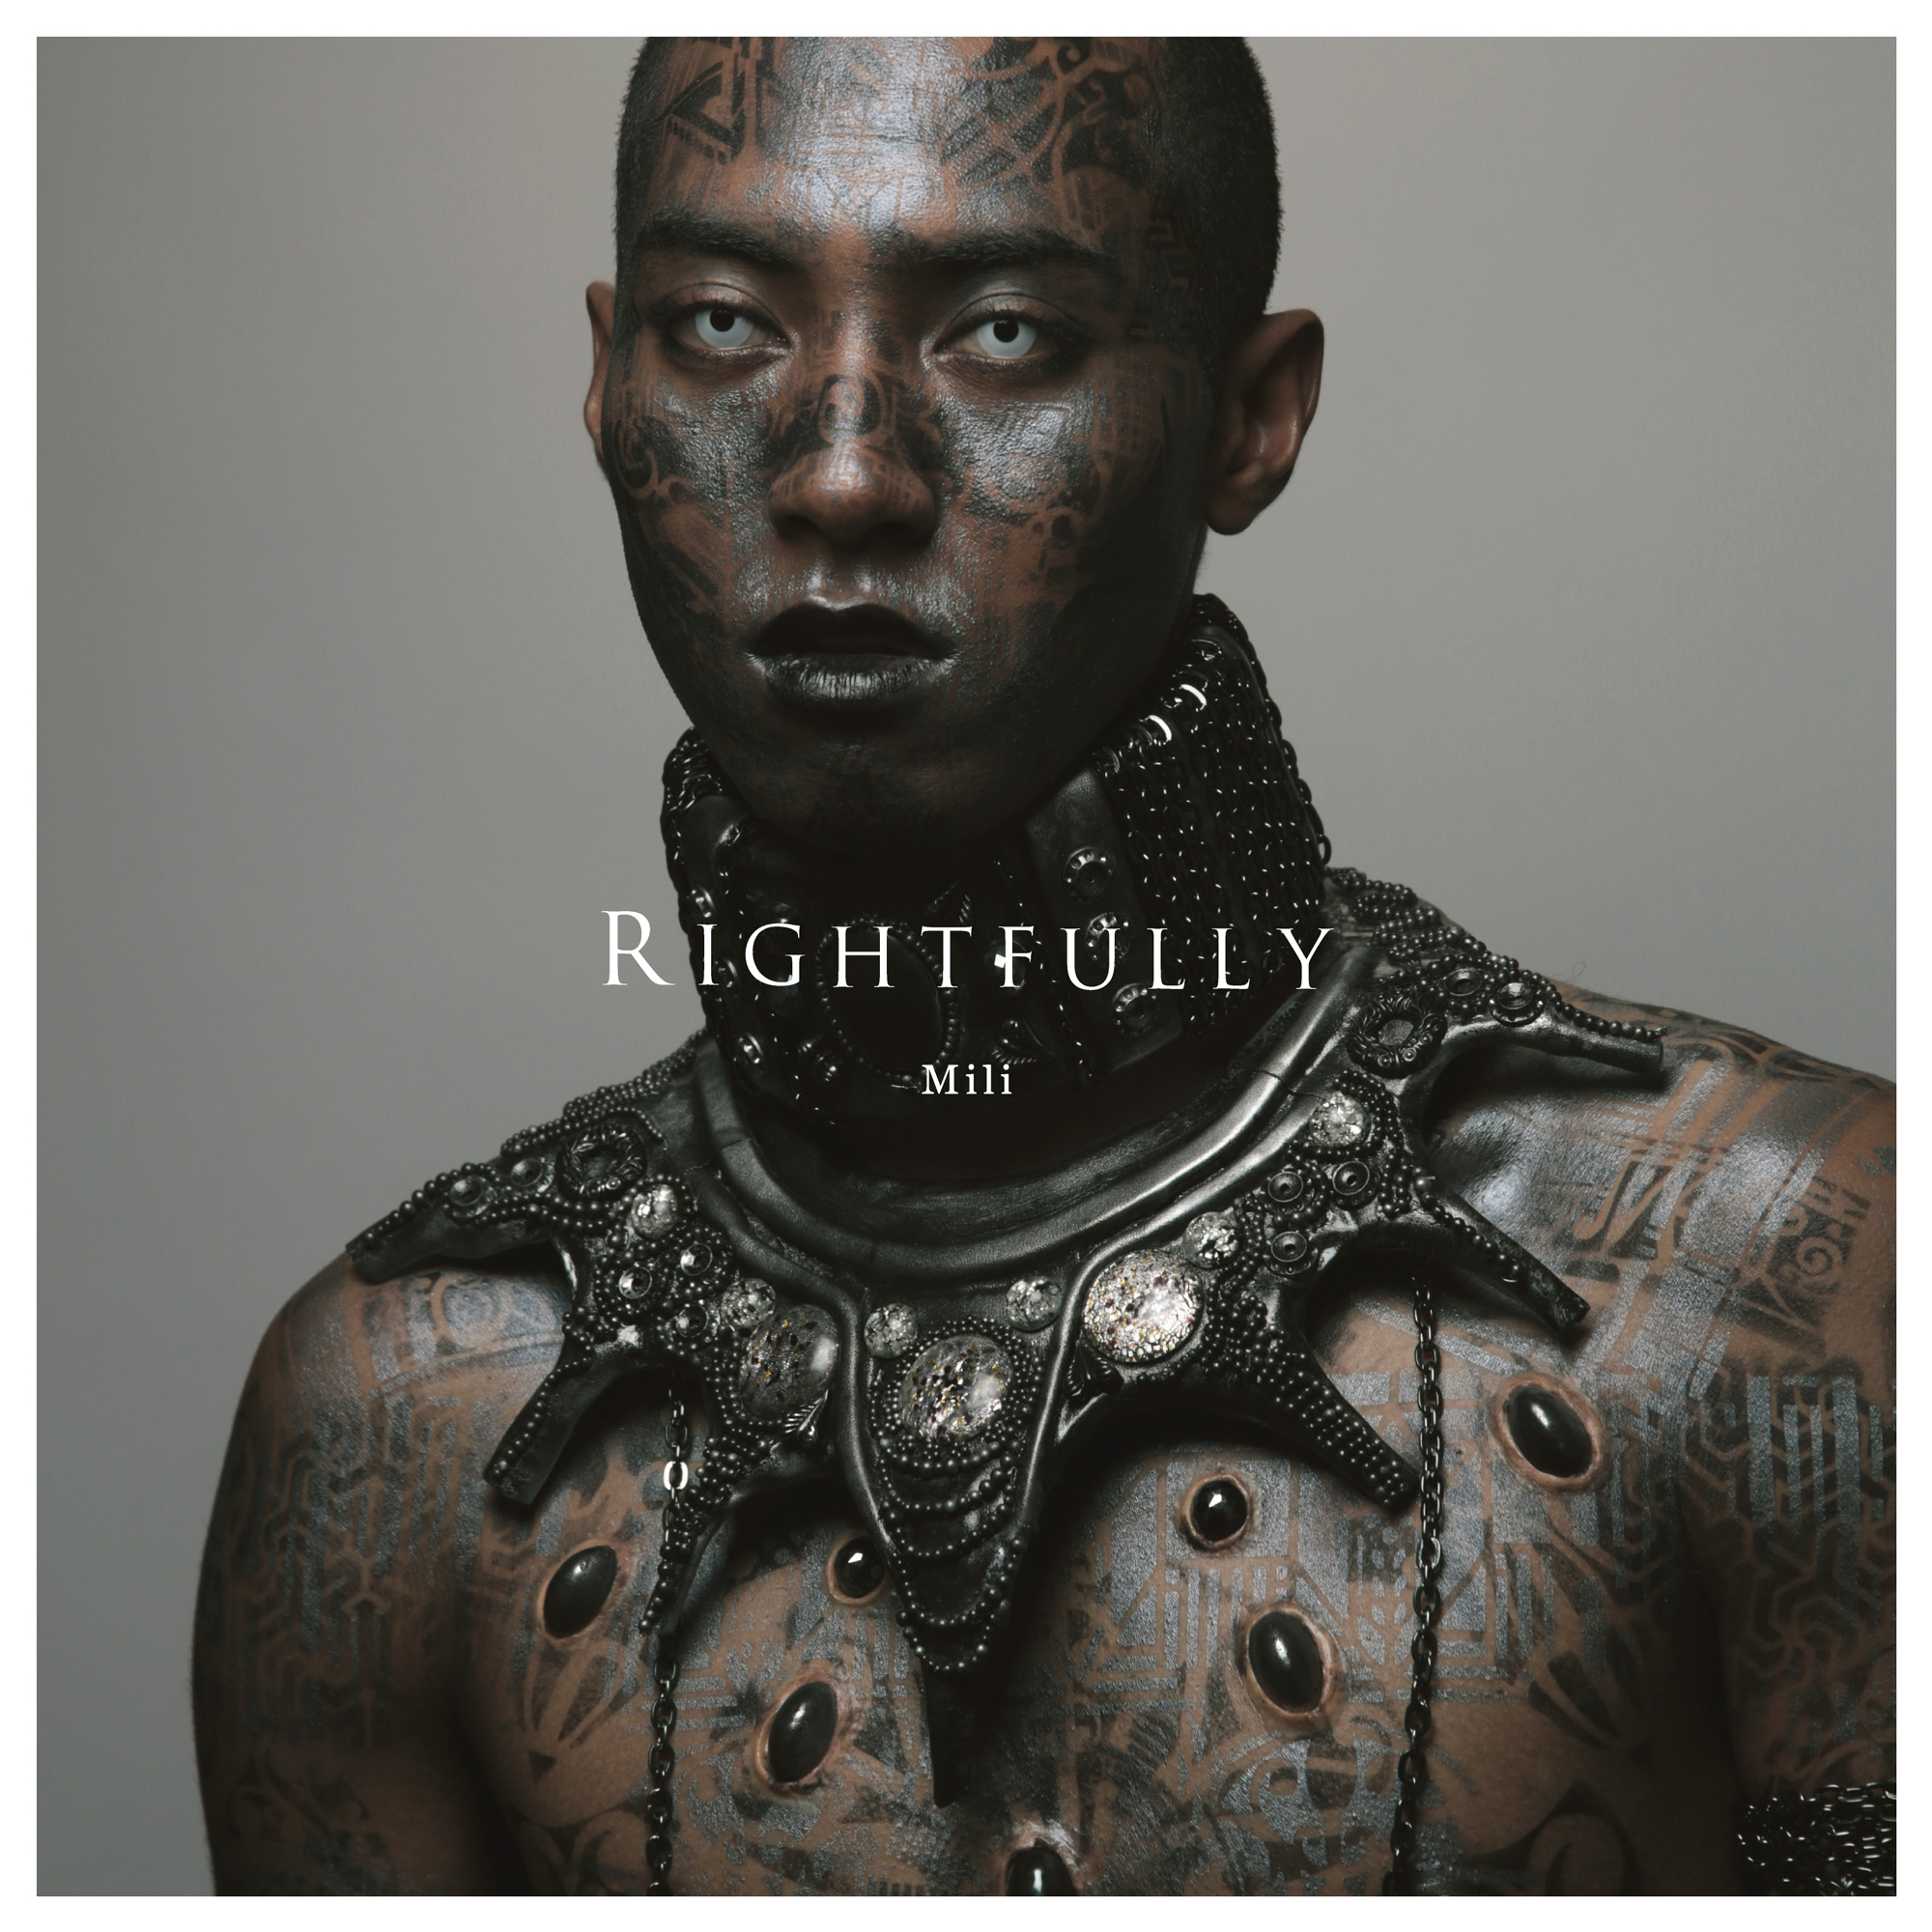 Rightfully (Miliスペシャルパッケージ)(CD+LiveDVD&moer).jpg